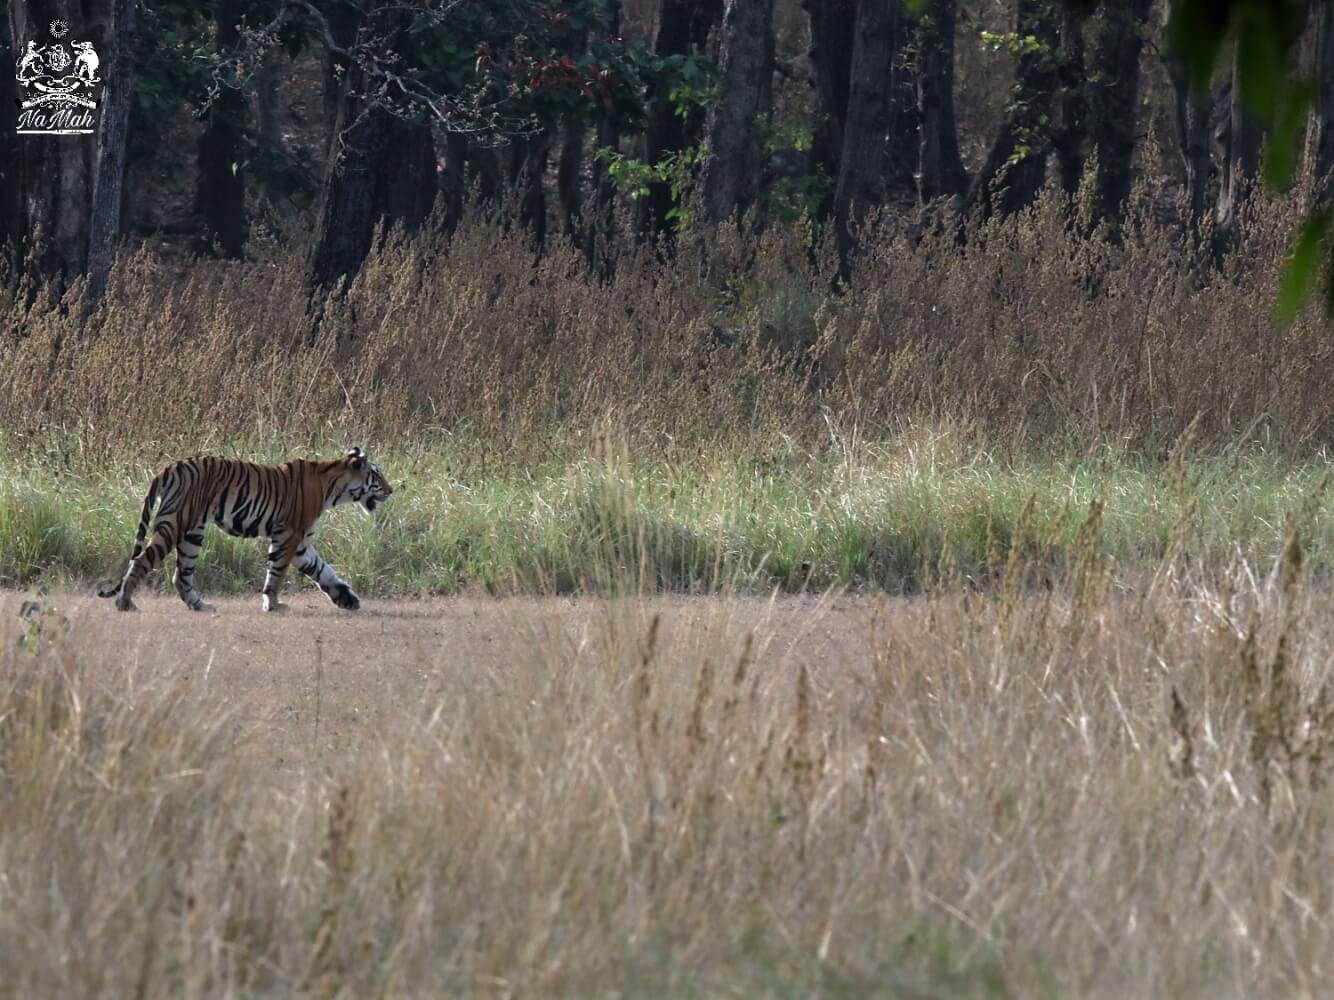 Tiger walking in its home forest, habitat photograph